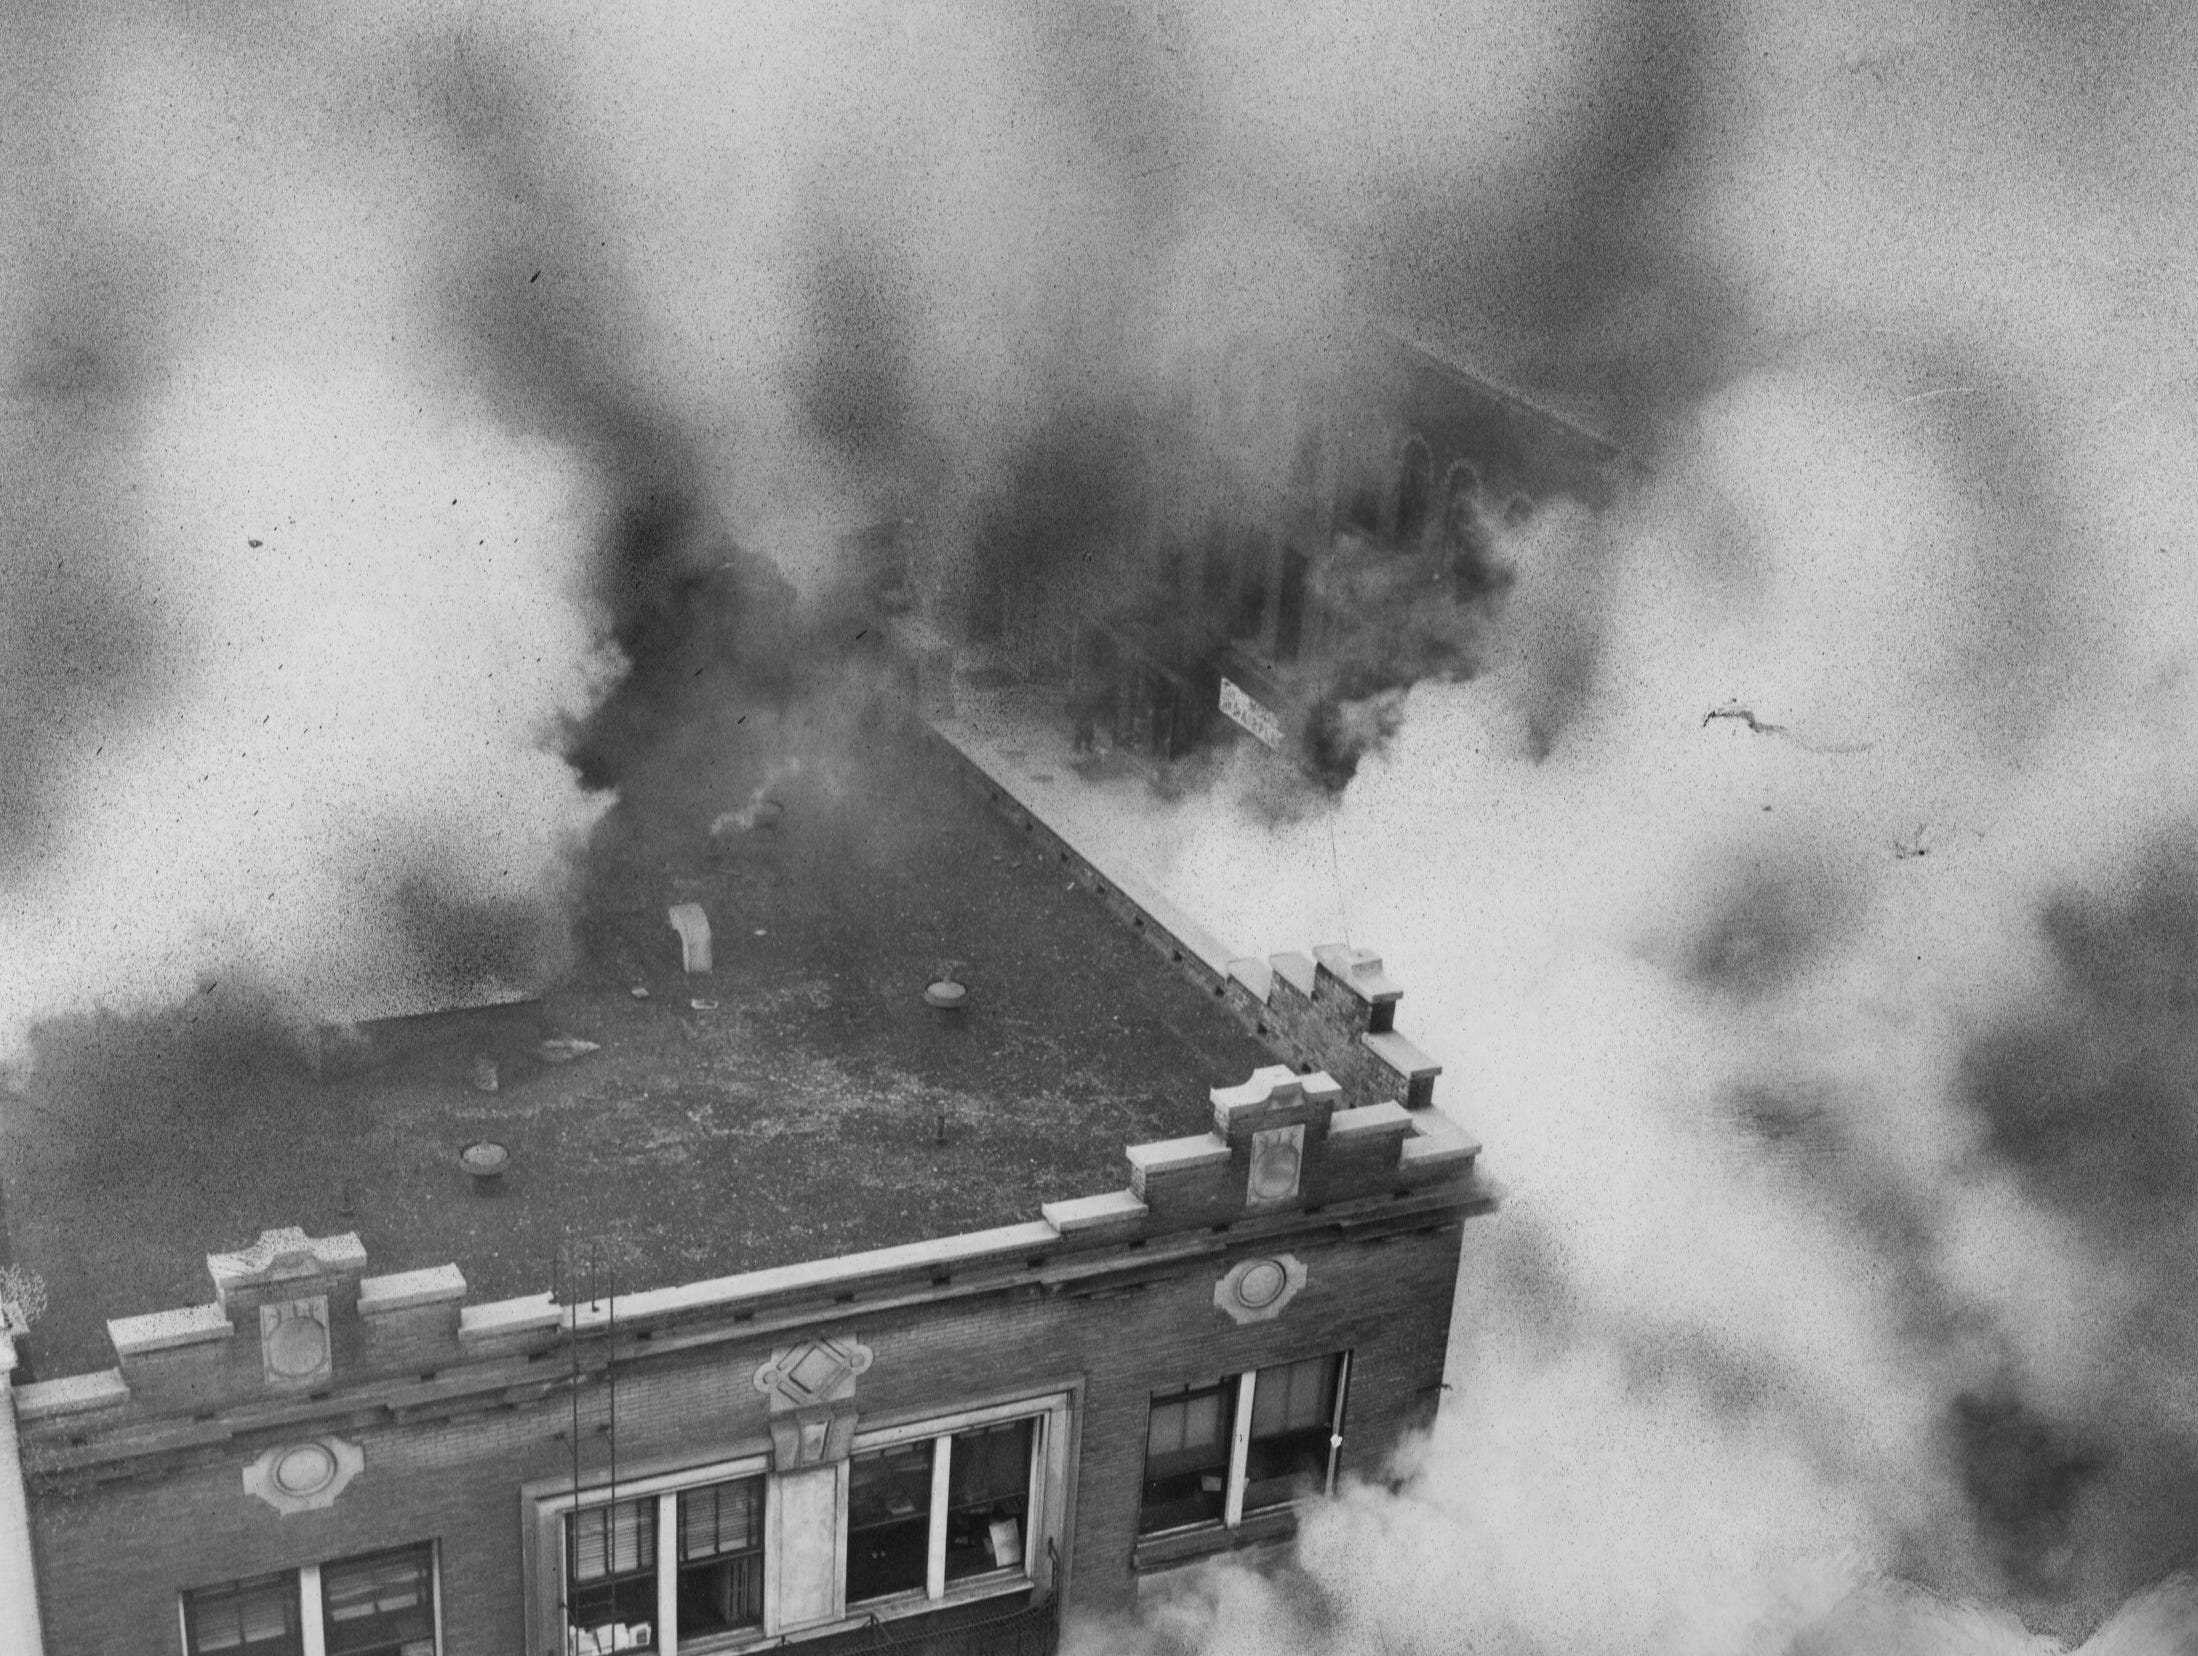 Fire at the Coleman Bldg. 